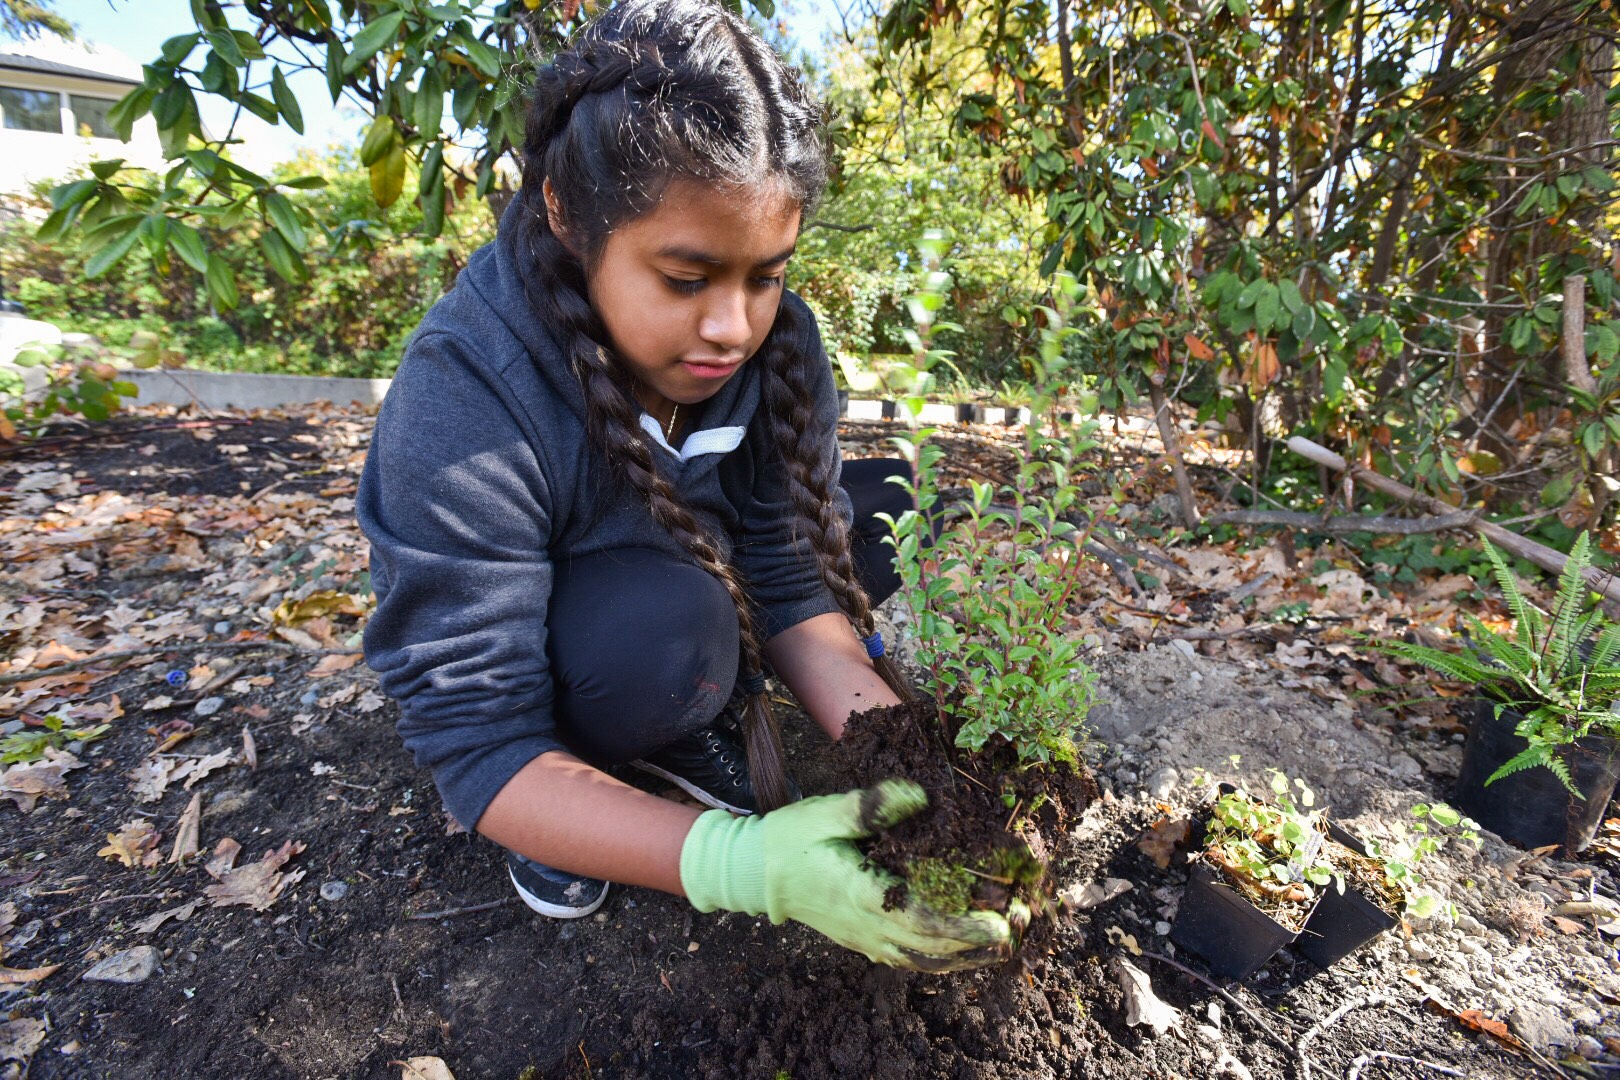 A student volunteer at Rainier Bean Urban Wetland Farm breaks up the soil around a native plant before she places it into the ground. Photo © Hannah Letinich